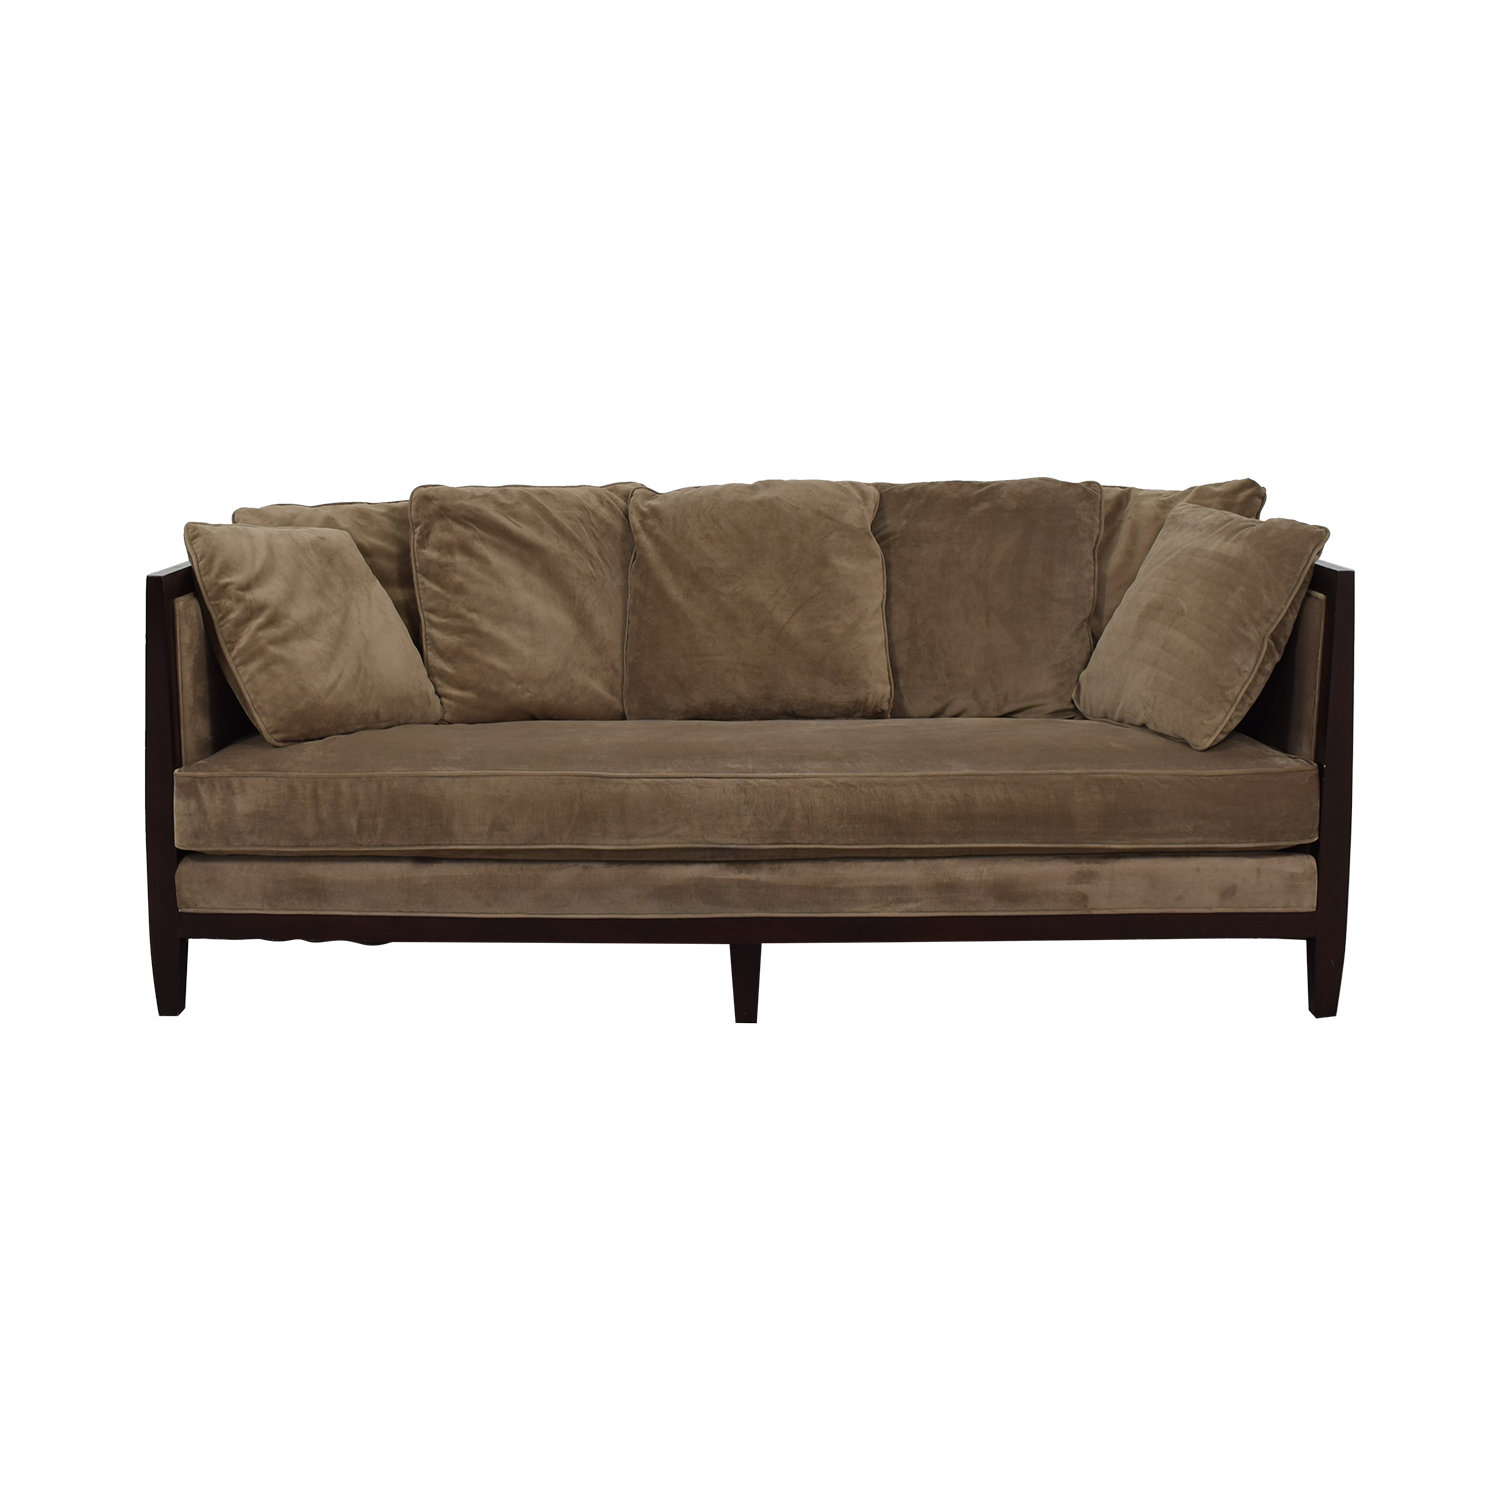 Bernhardt Mocha Brown Single Cushion Sofa Dimensions